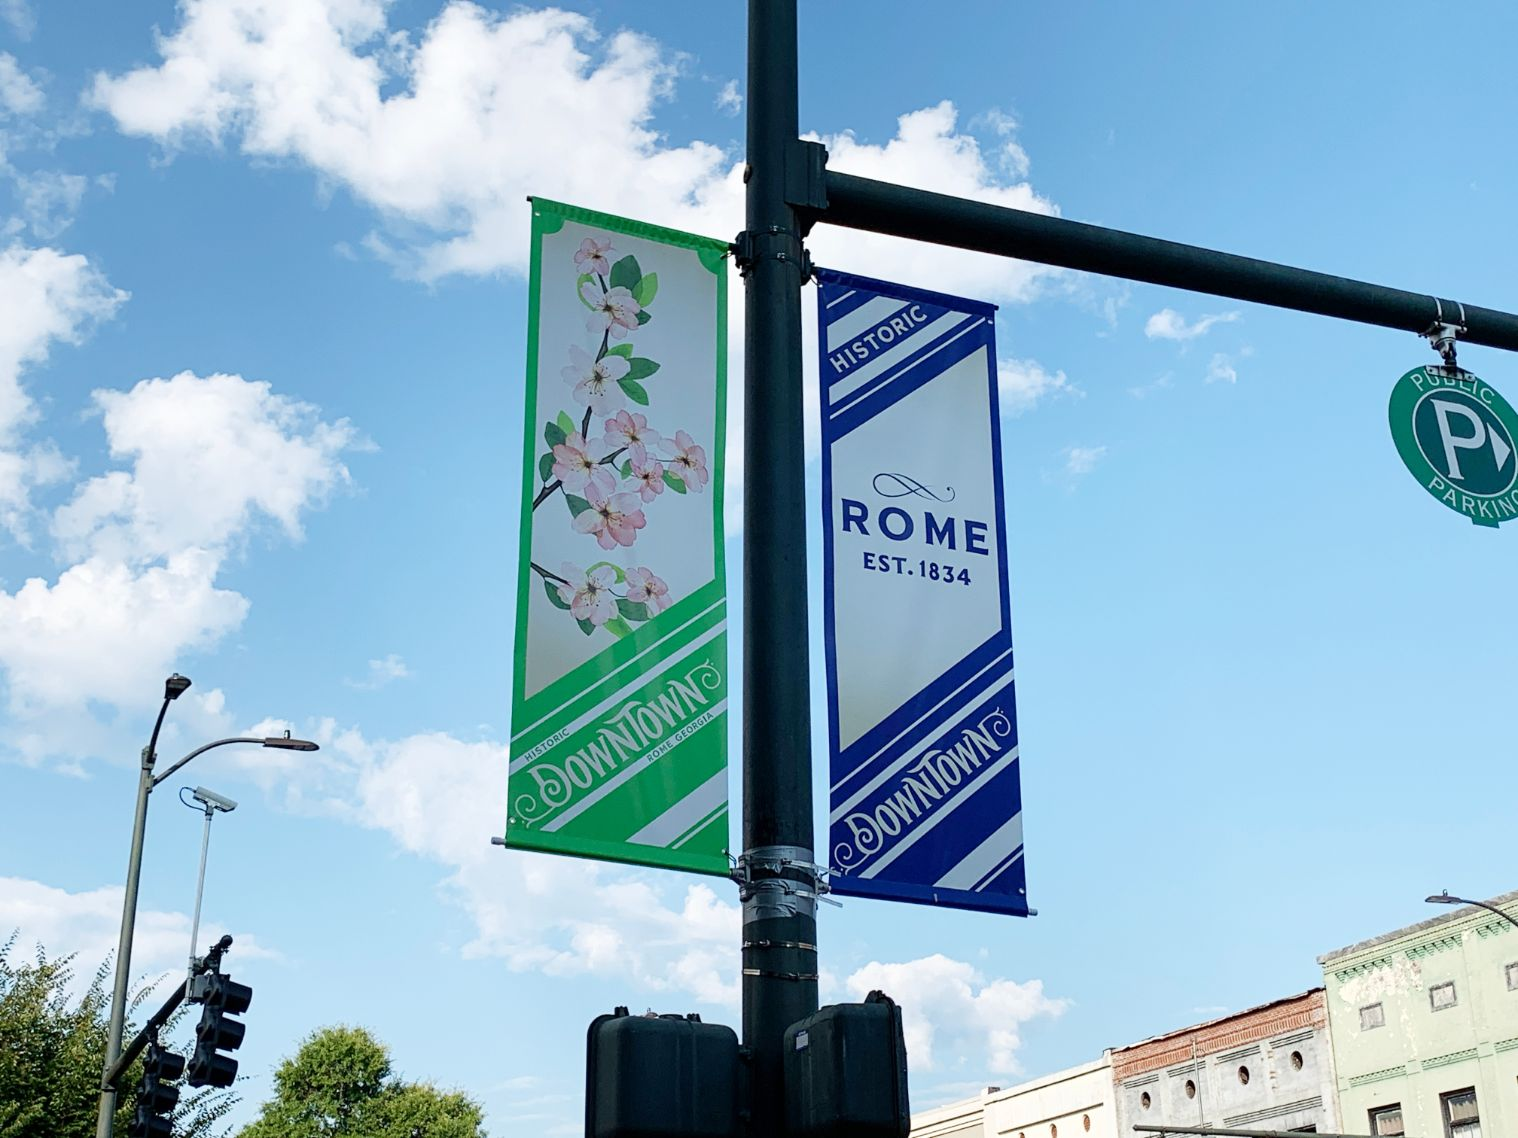 downtown rome flag pole banners